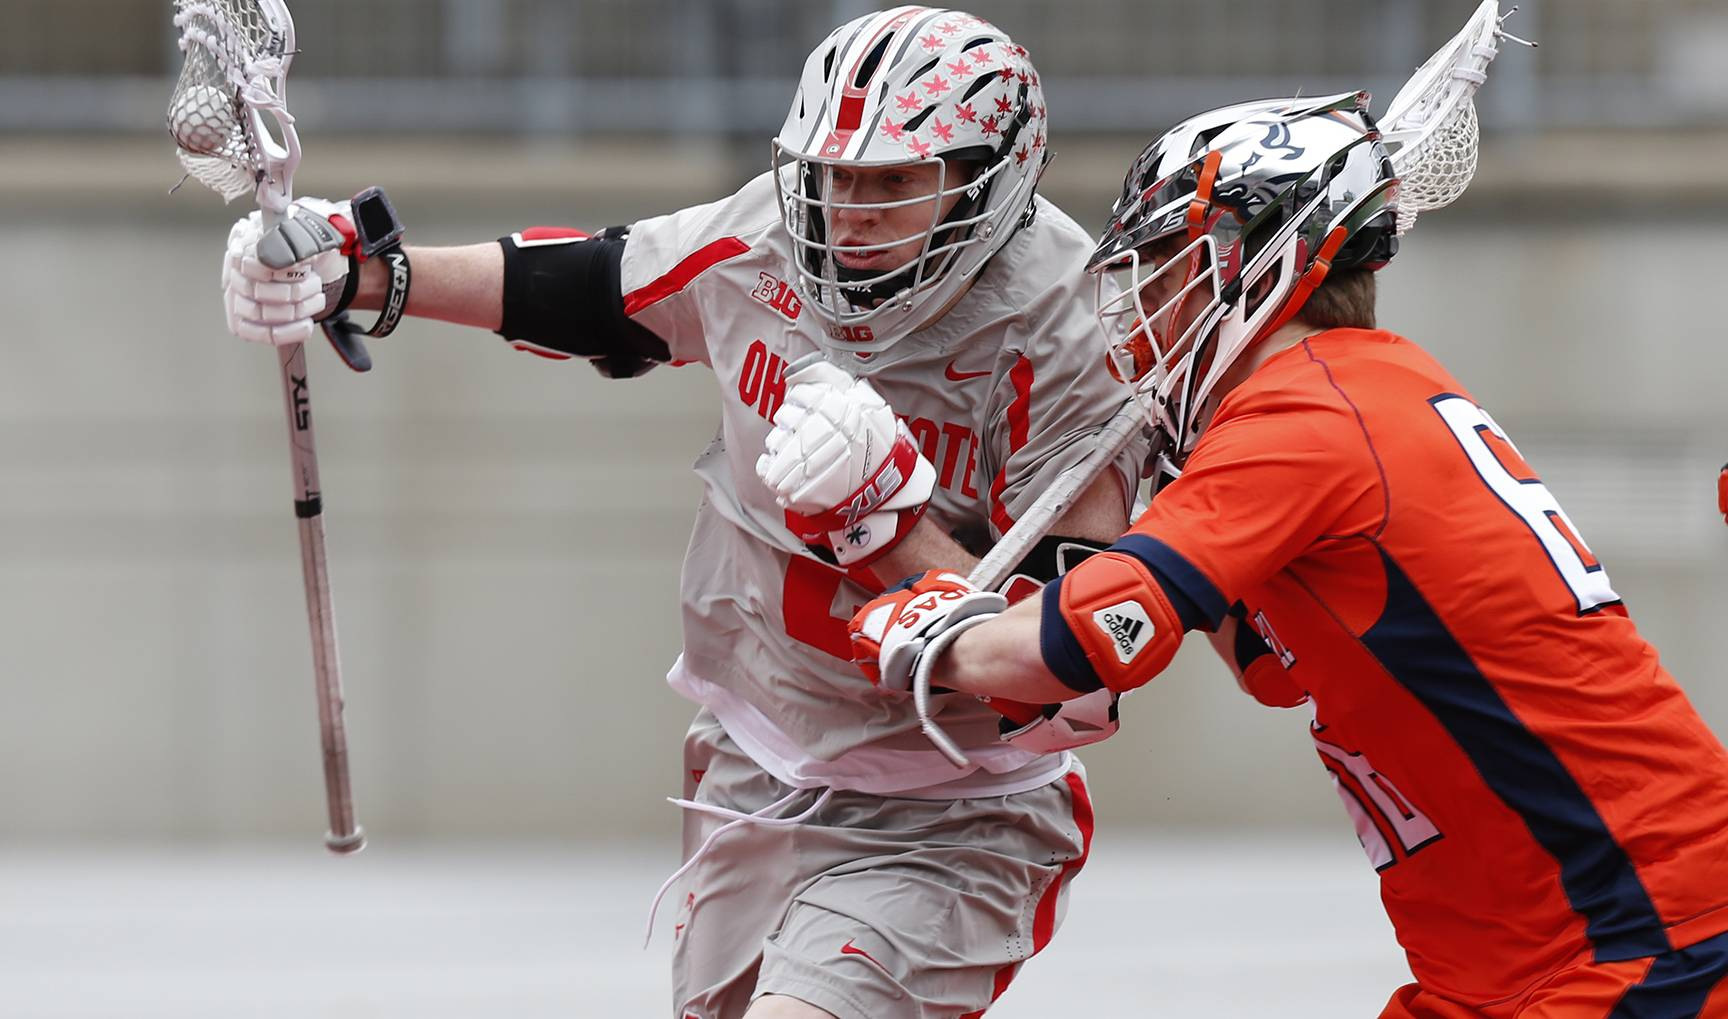 Ohio State Score No 11 Ohio State Earns 16 13 Victory Over Bucknell Ohio State